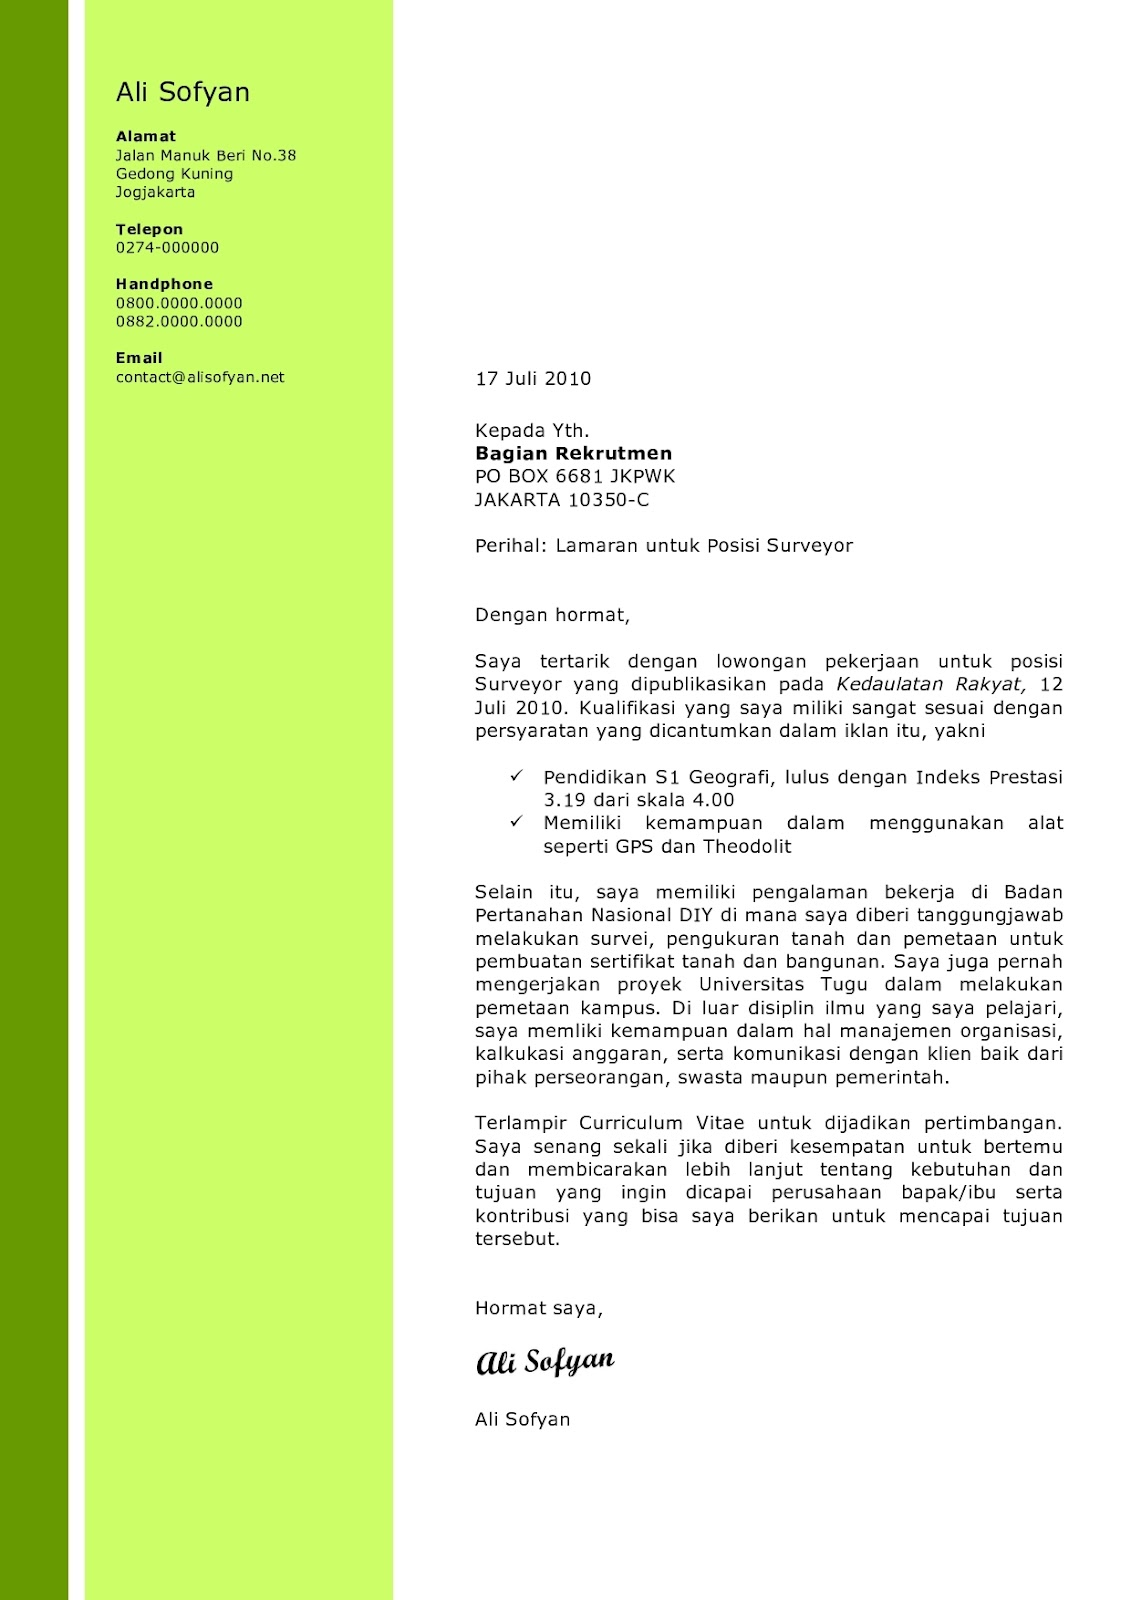 Application letter sample for fresh graduate civil engineer altavistaventures Image collections